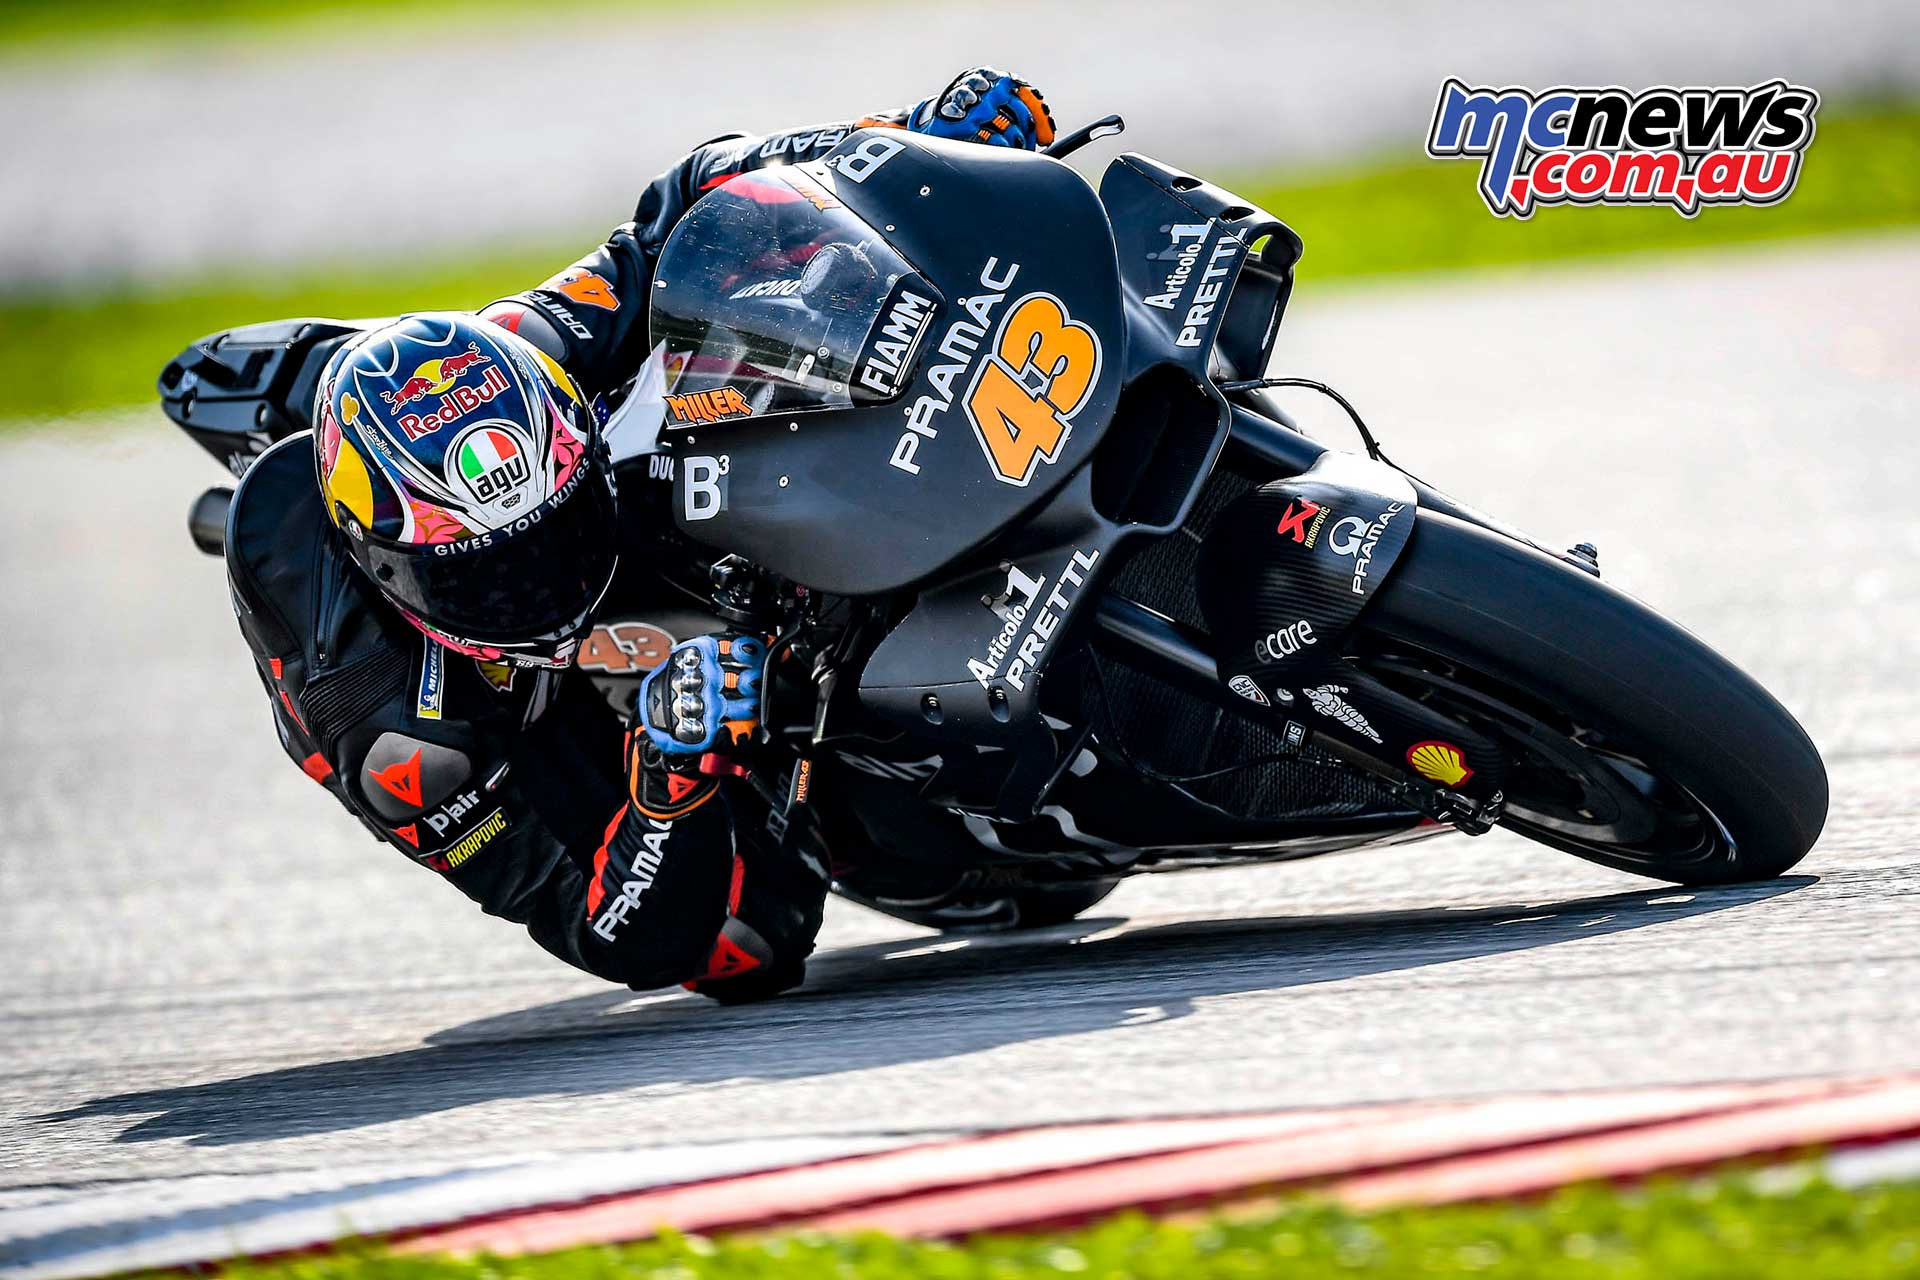 Motogp Live Streaming Malaysia | MotoGP 2017 Info, Video, Points Table